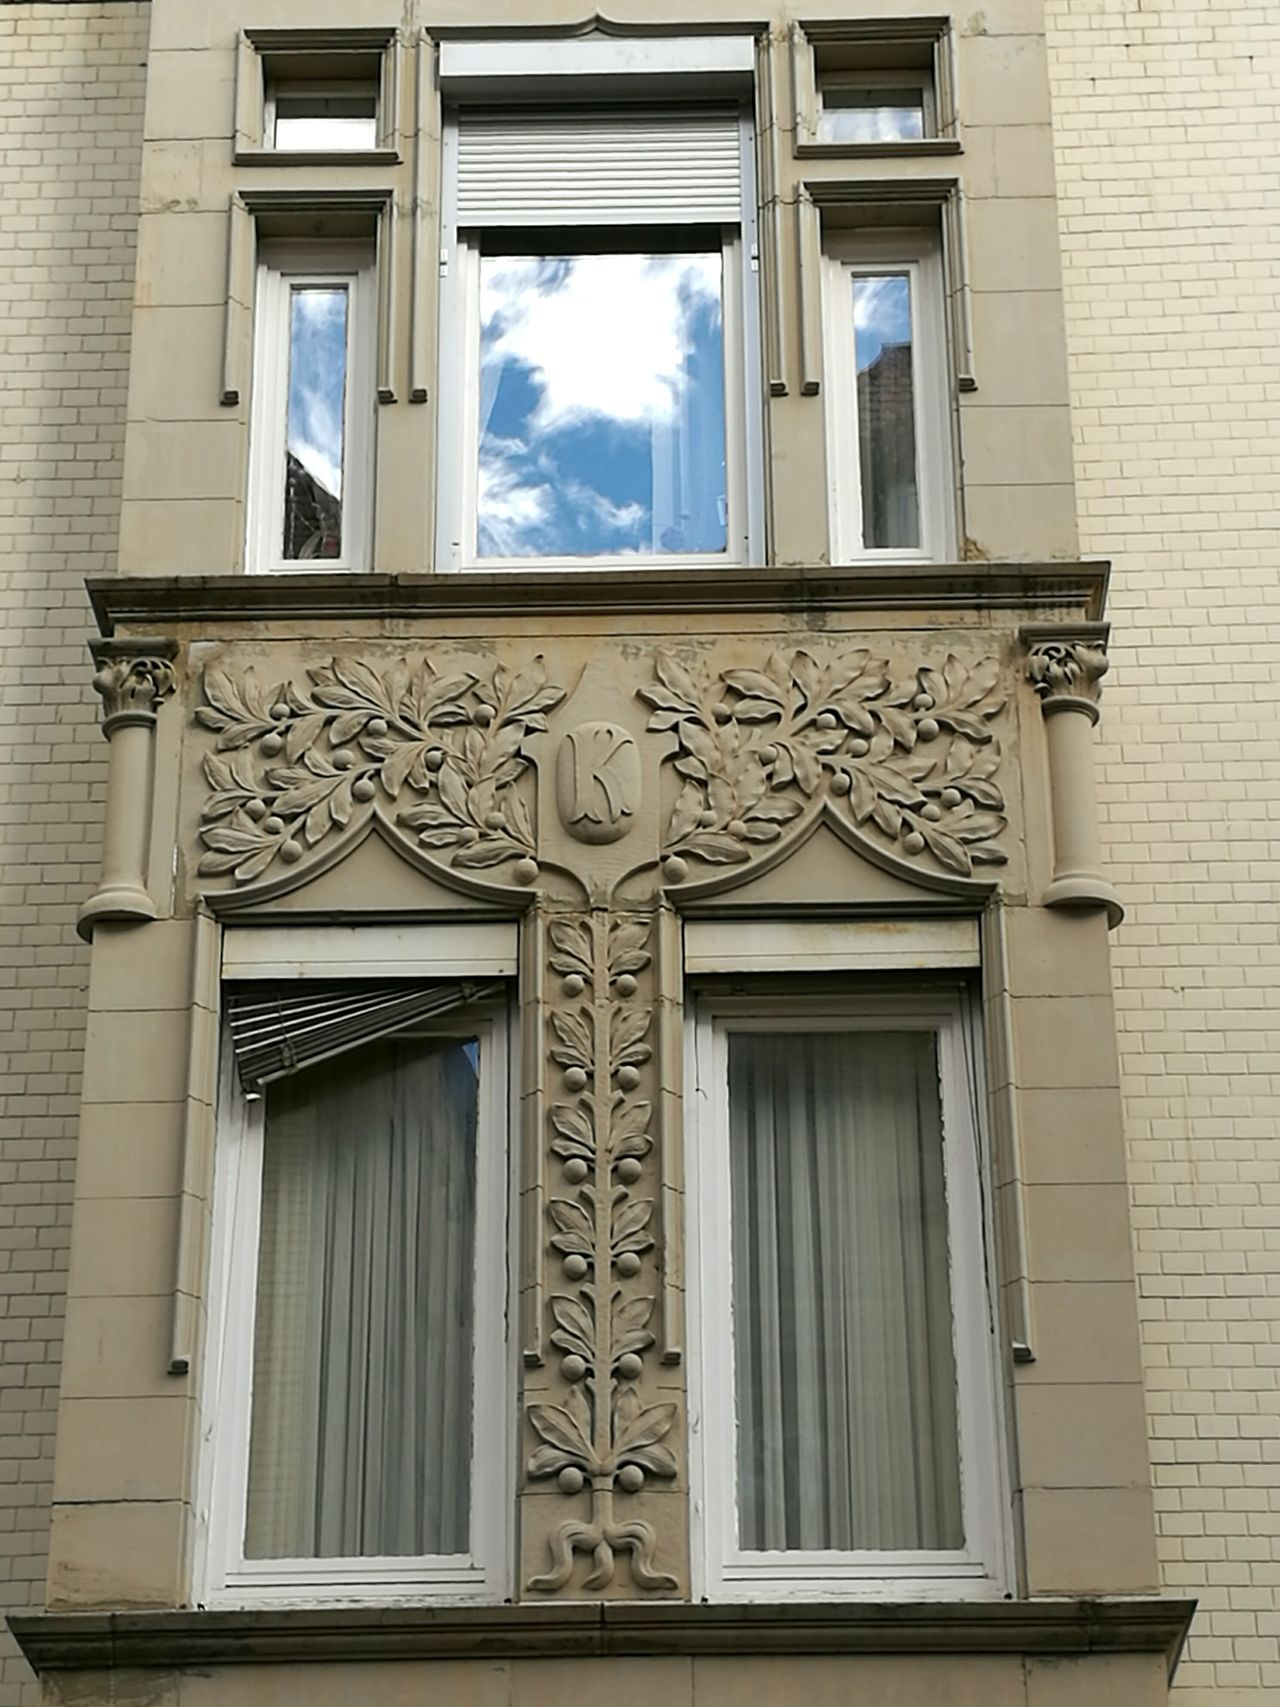 Detail of an Art nouveau house an sun in the window. Architecture Ornate Art And Craft Creativity Art Nouveau Style Art Nouveau Buildings Art Nouveau Architecture Architecture_collection The Past Stuttgart Architectural Detail Historic Arch Architecture Balcony Architecturelovers Stuttgartmobilephotographers